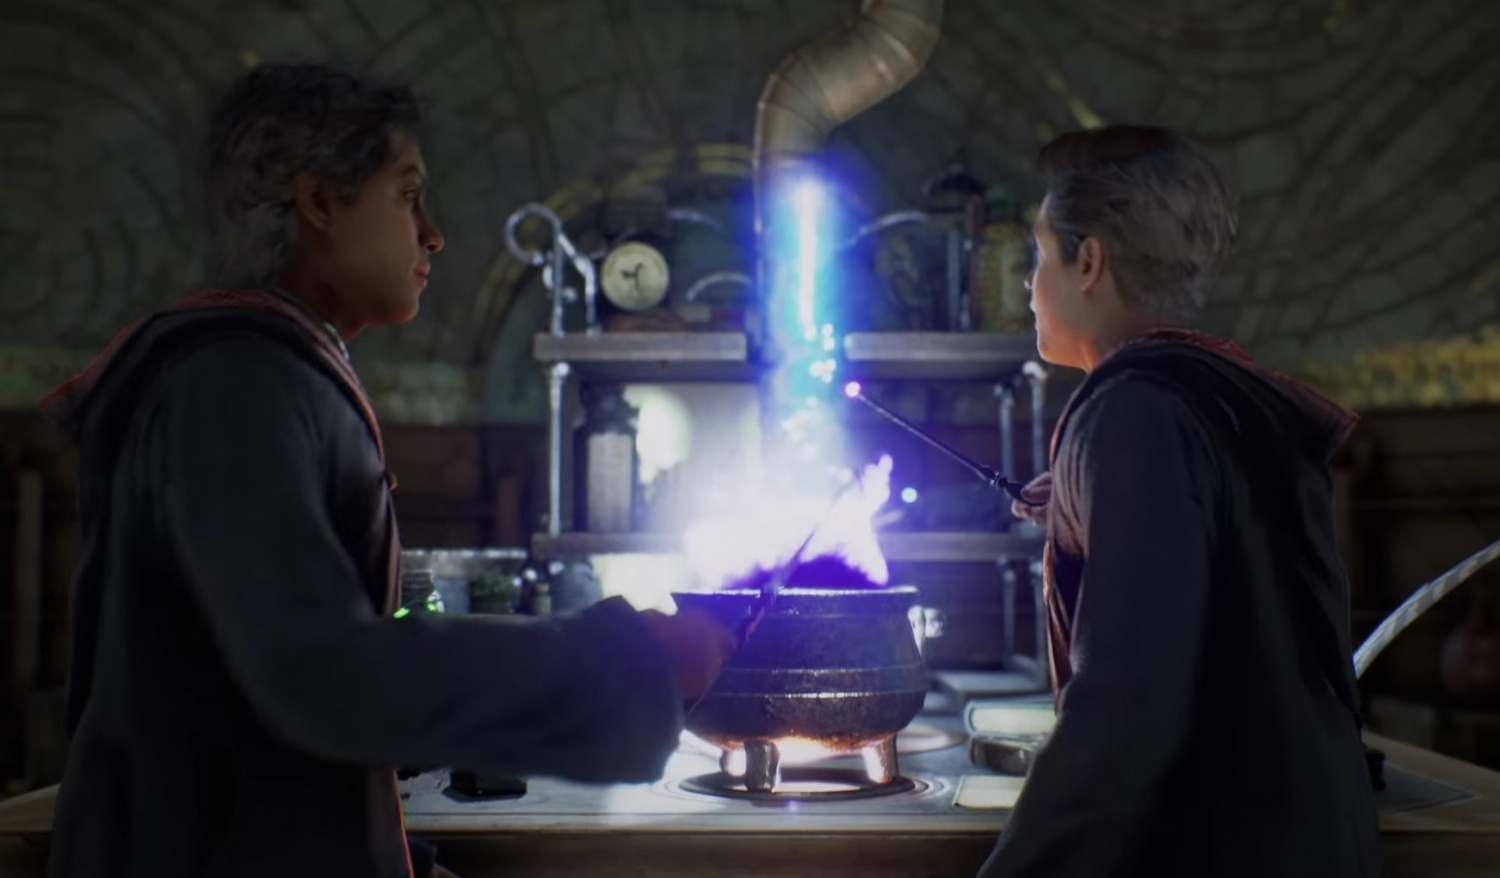 'Harry Potter Hogwarts Legacy' Could Hint The Launch Date of the Game: WB Games